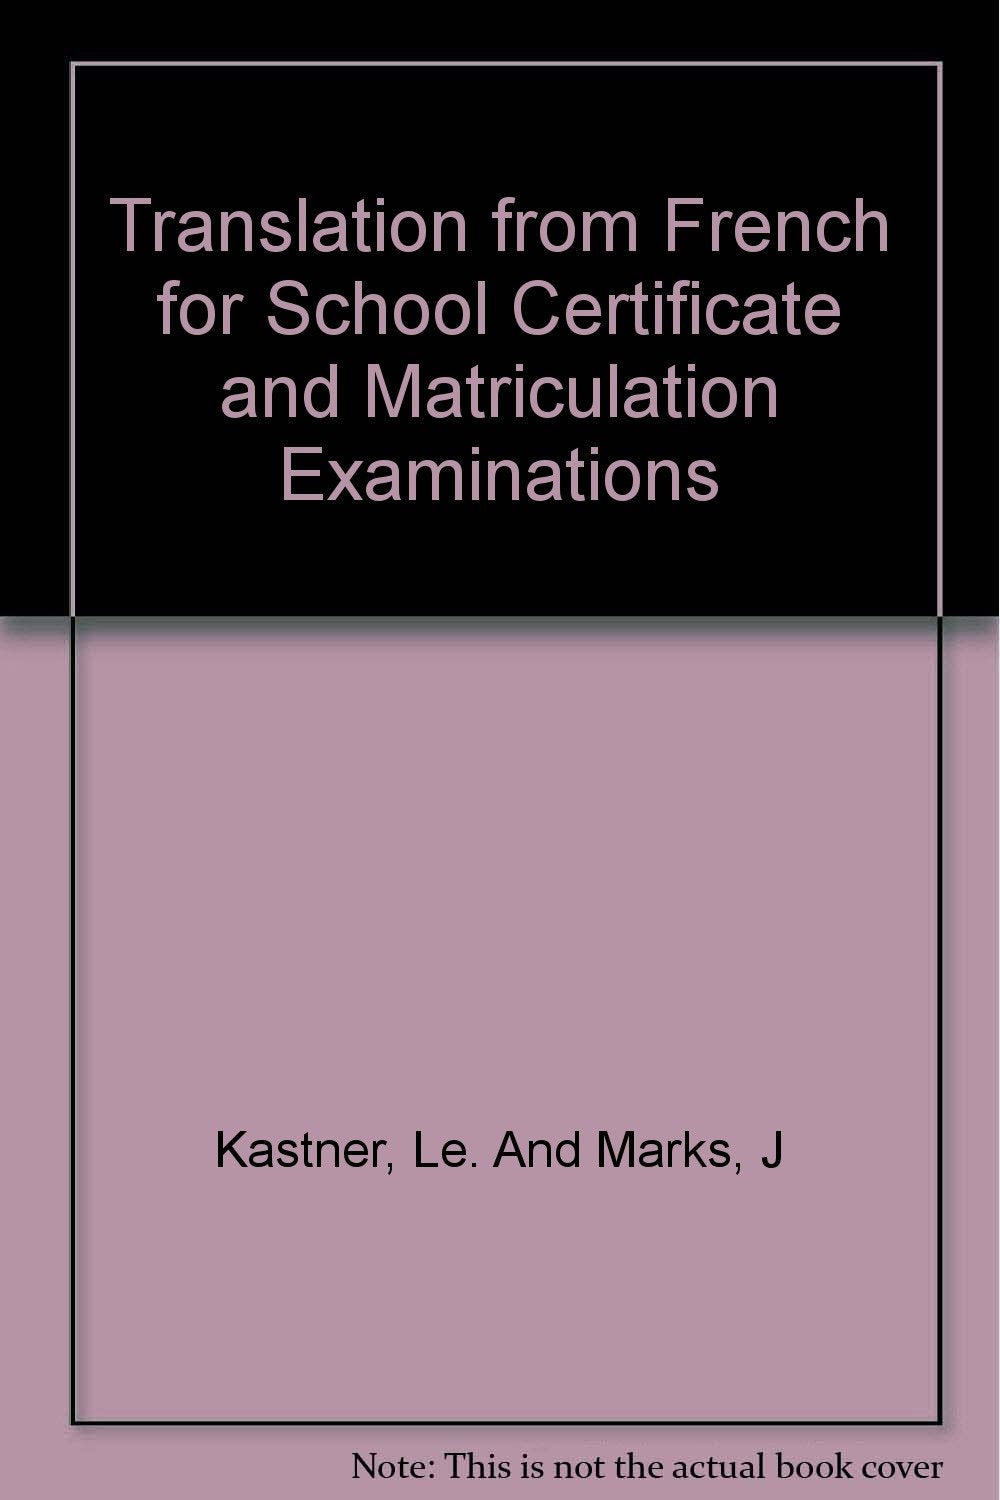 Translation From French For School Certificate And Matriculation Examinations [Hardcover] Kastner, L.E. And Marks, J.